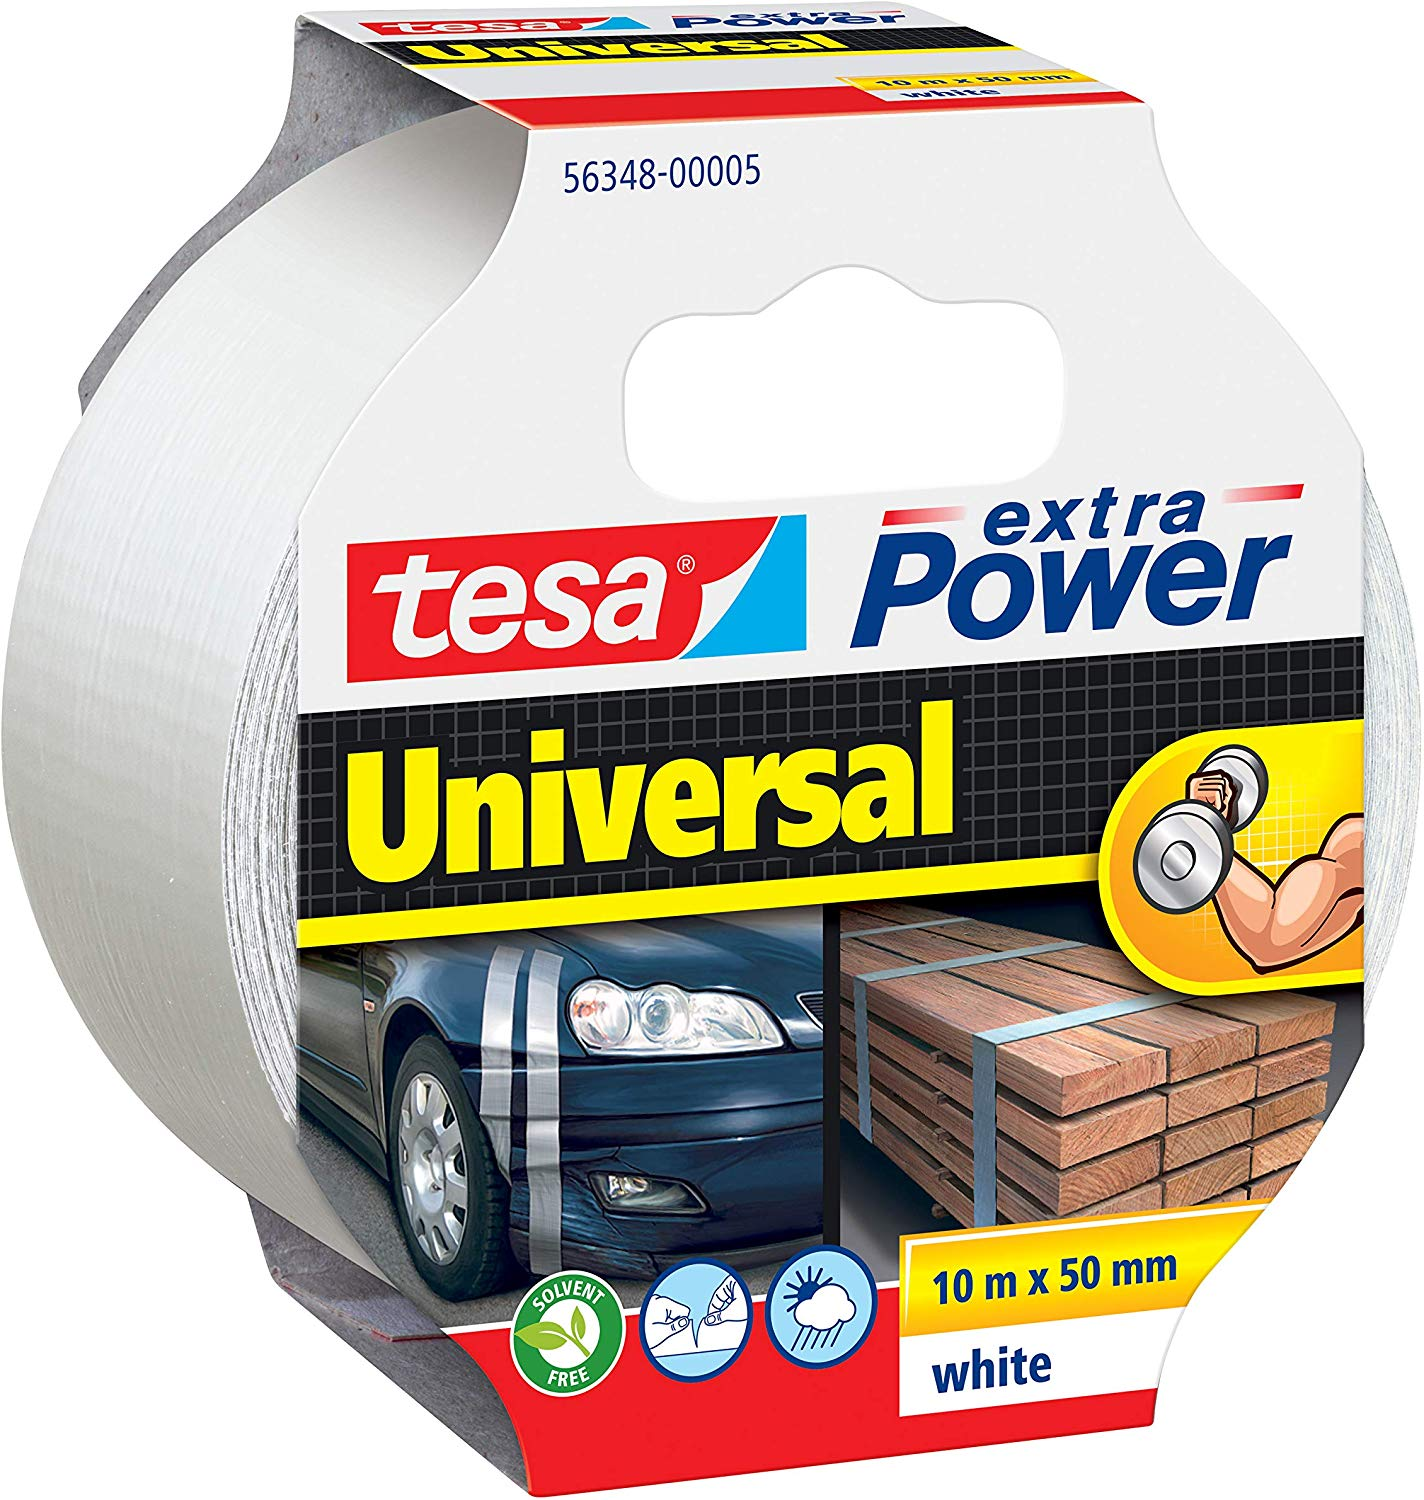 GP: 0,36 EUR/m tesa extra Power Universal Weiß 10m x 50mm